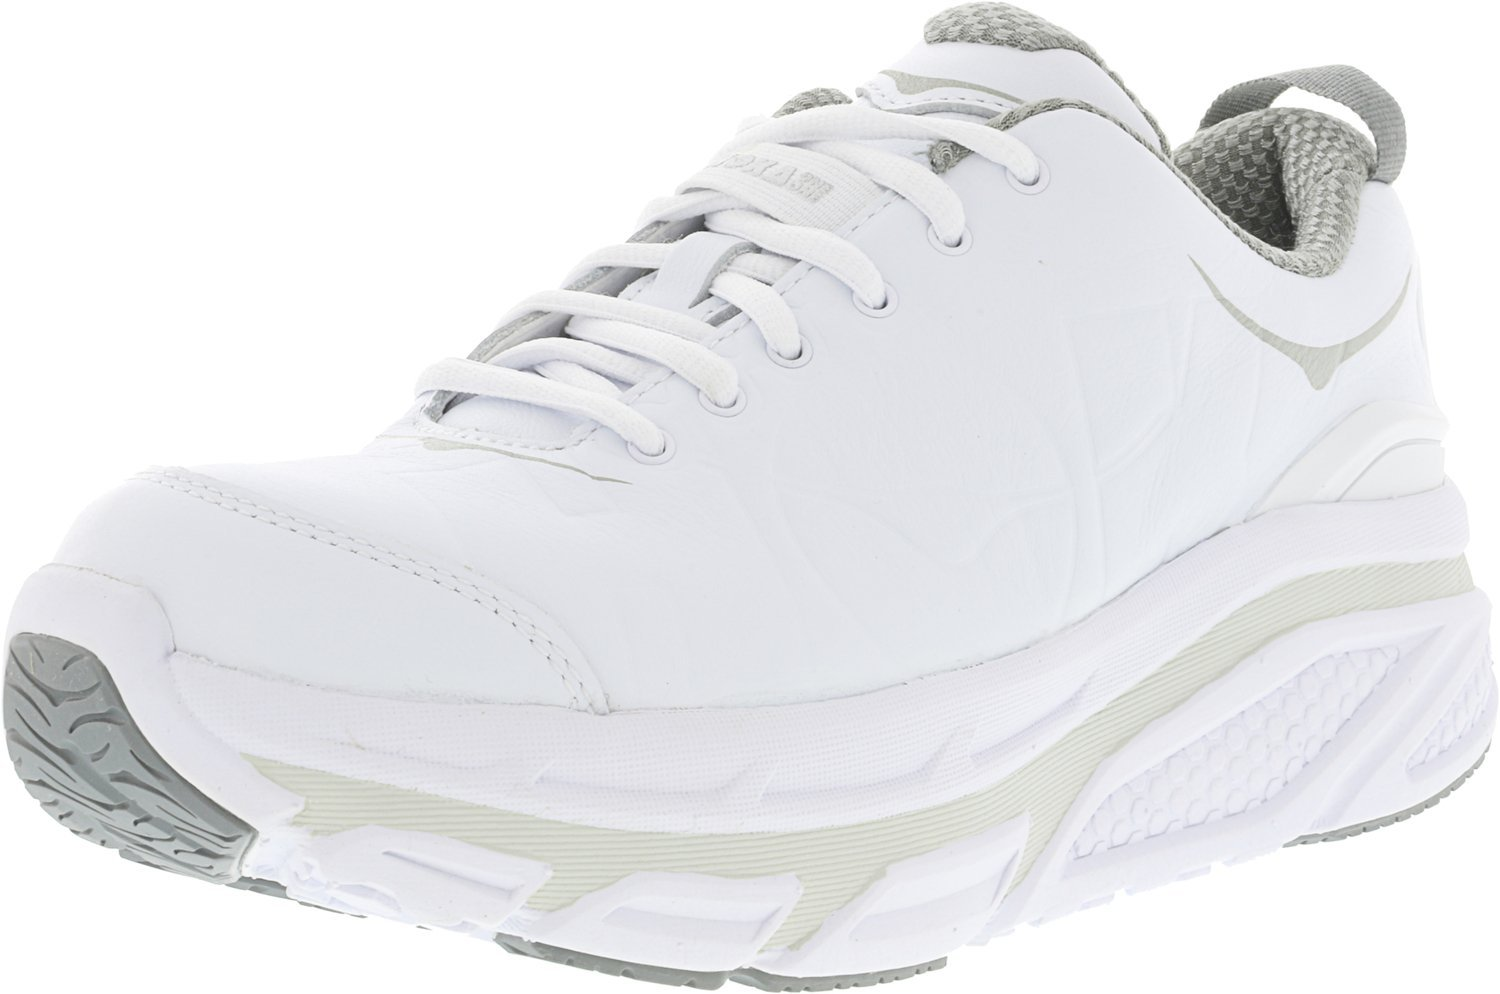 Hoka One One Women's Valor Long Trail Walking Shoe,White,US 9.5